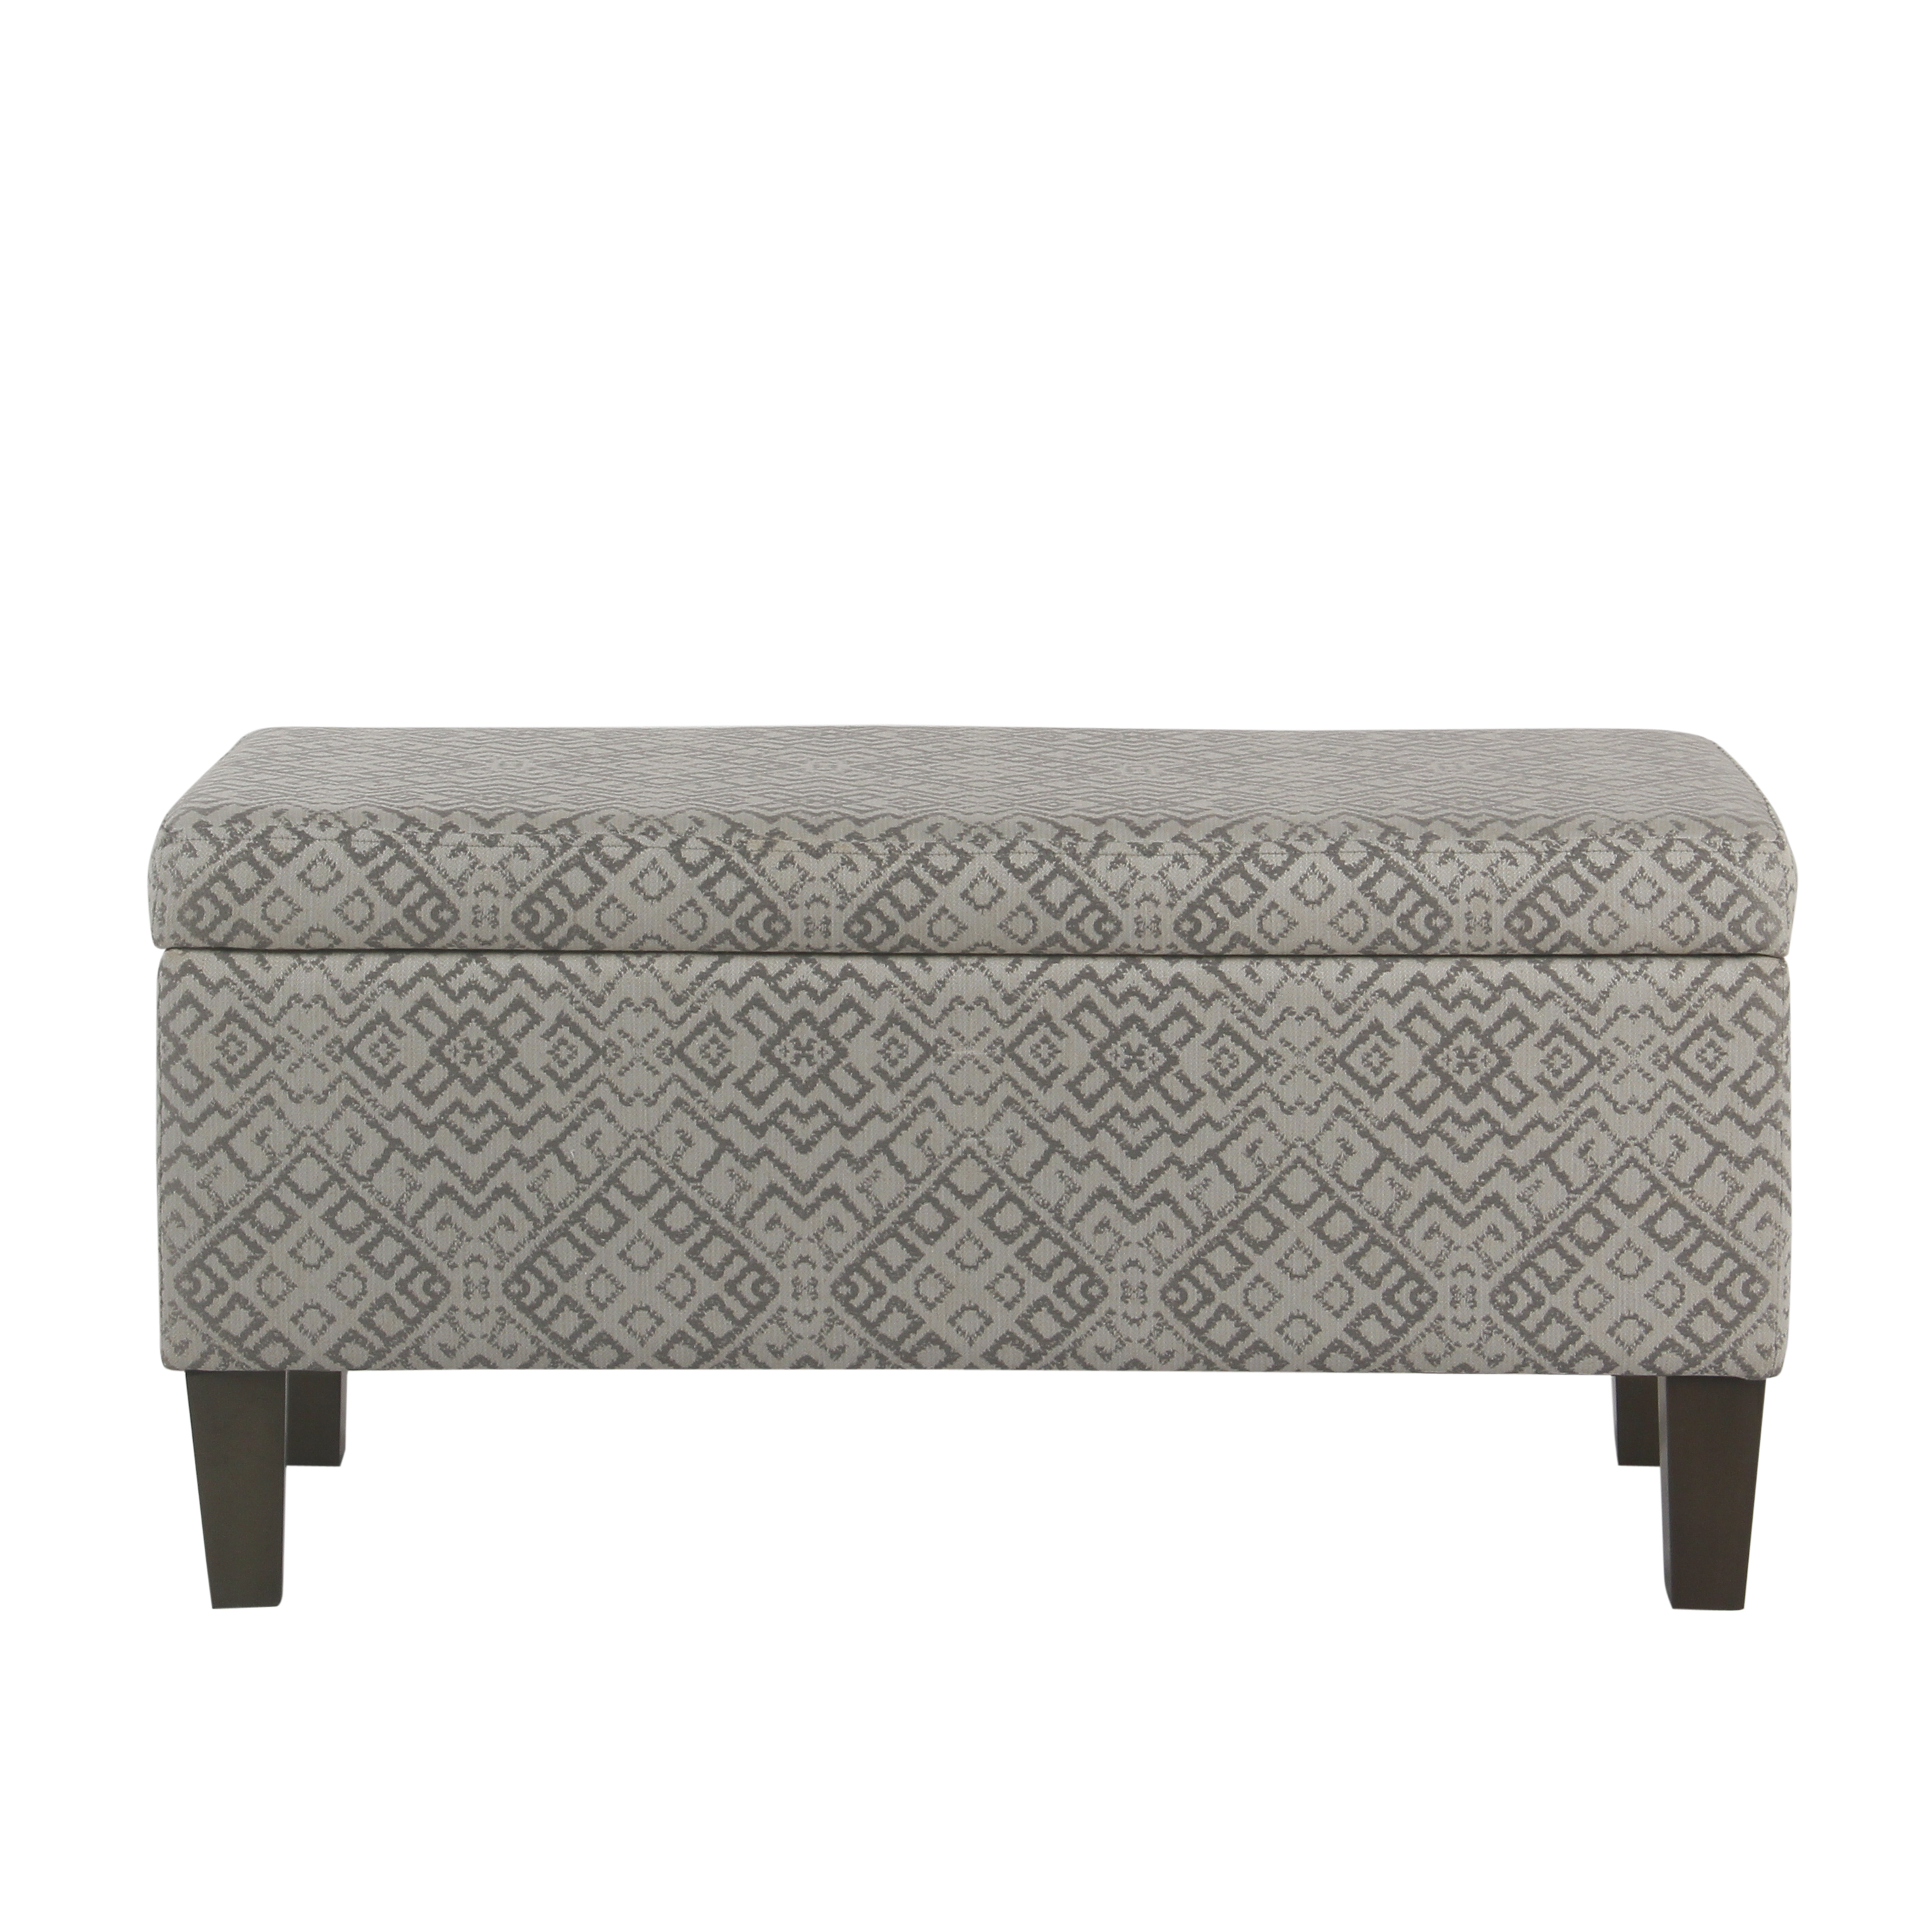 HomePop Large Storage Bench, Gray